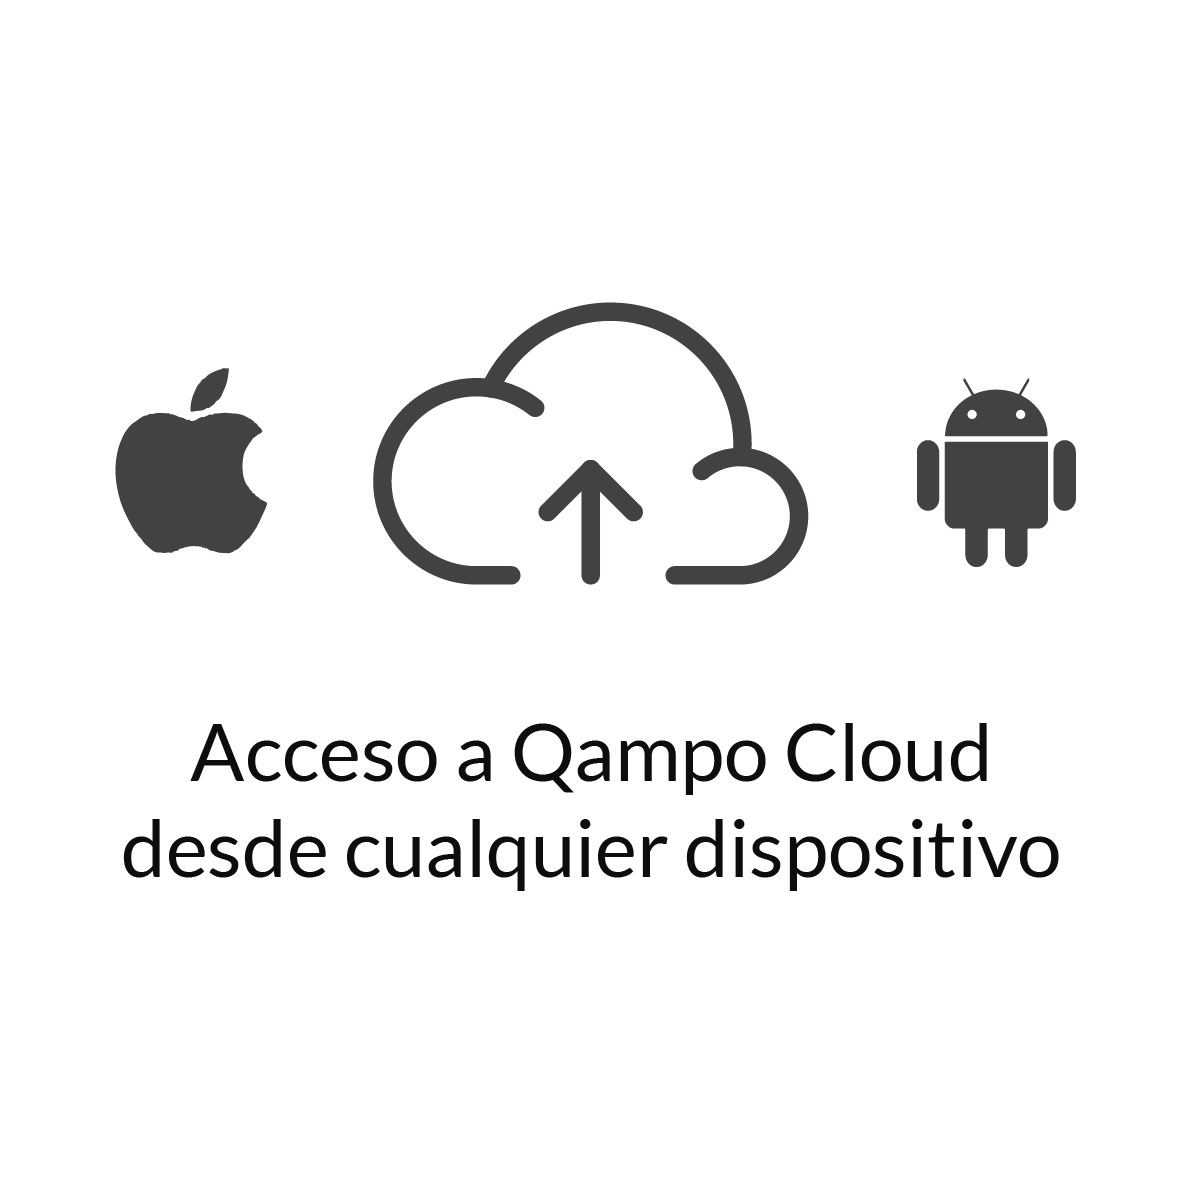 Acceso-Qampo-Cloud